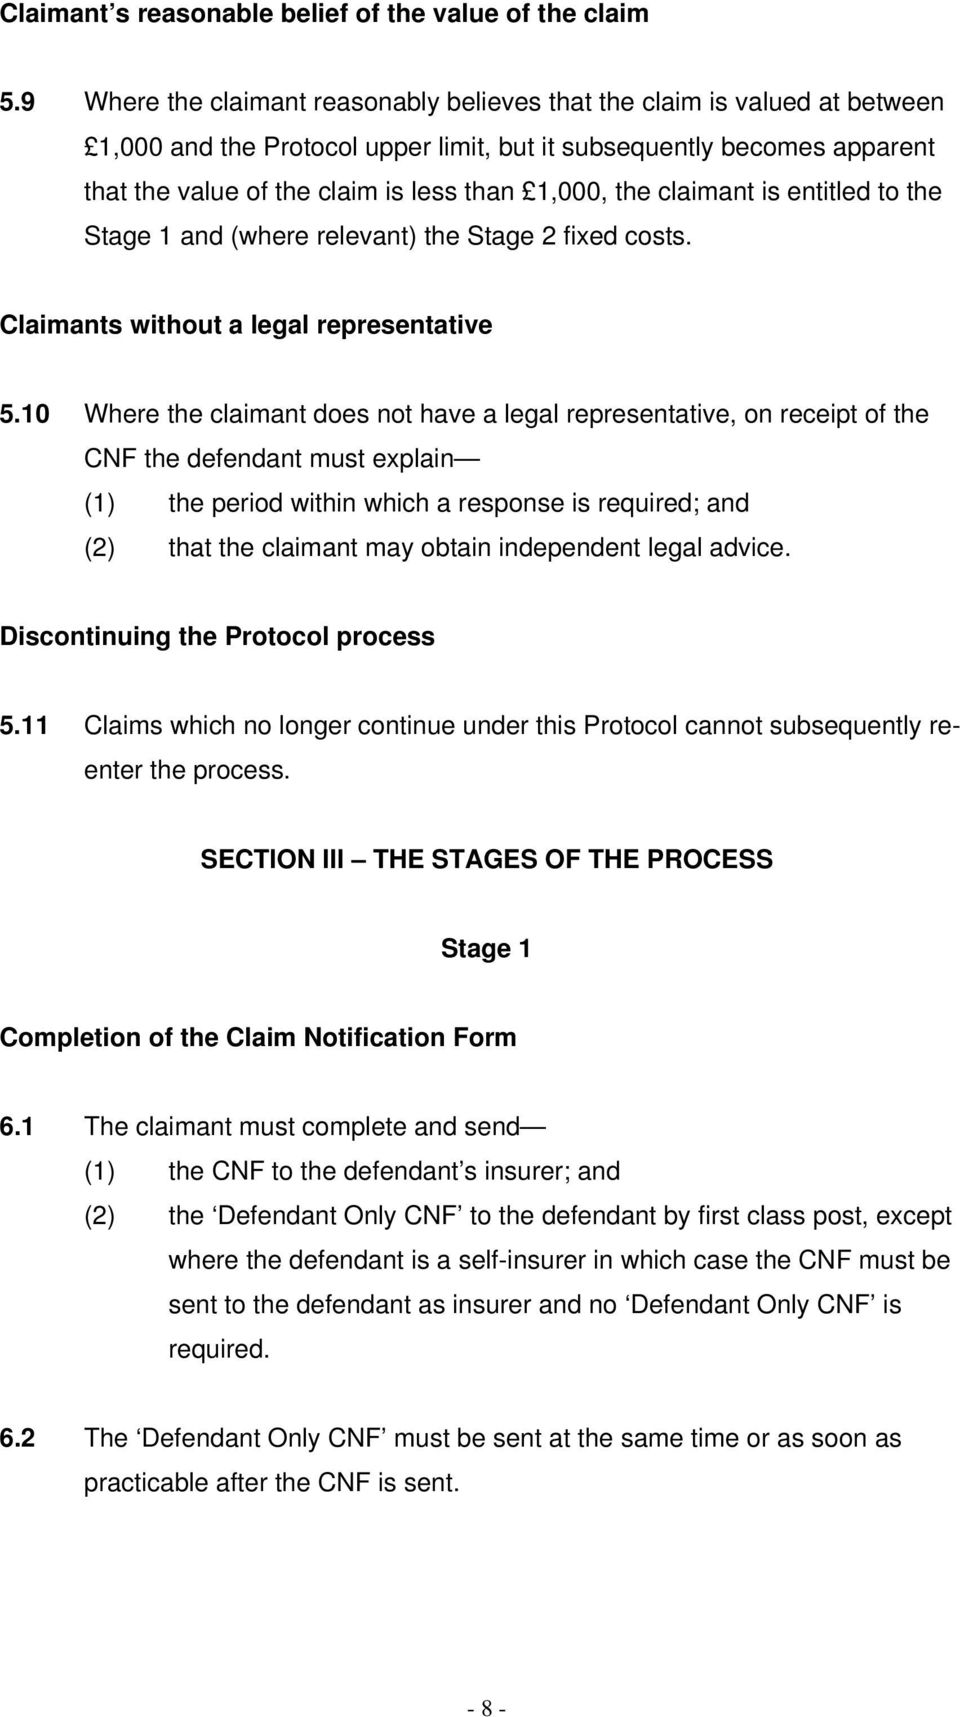 the claimant is entitled to the Stage 1 and (where relevant) the Stage 2 fixed costs. Claimants without a legal representative 5.